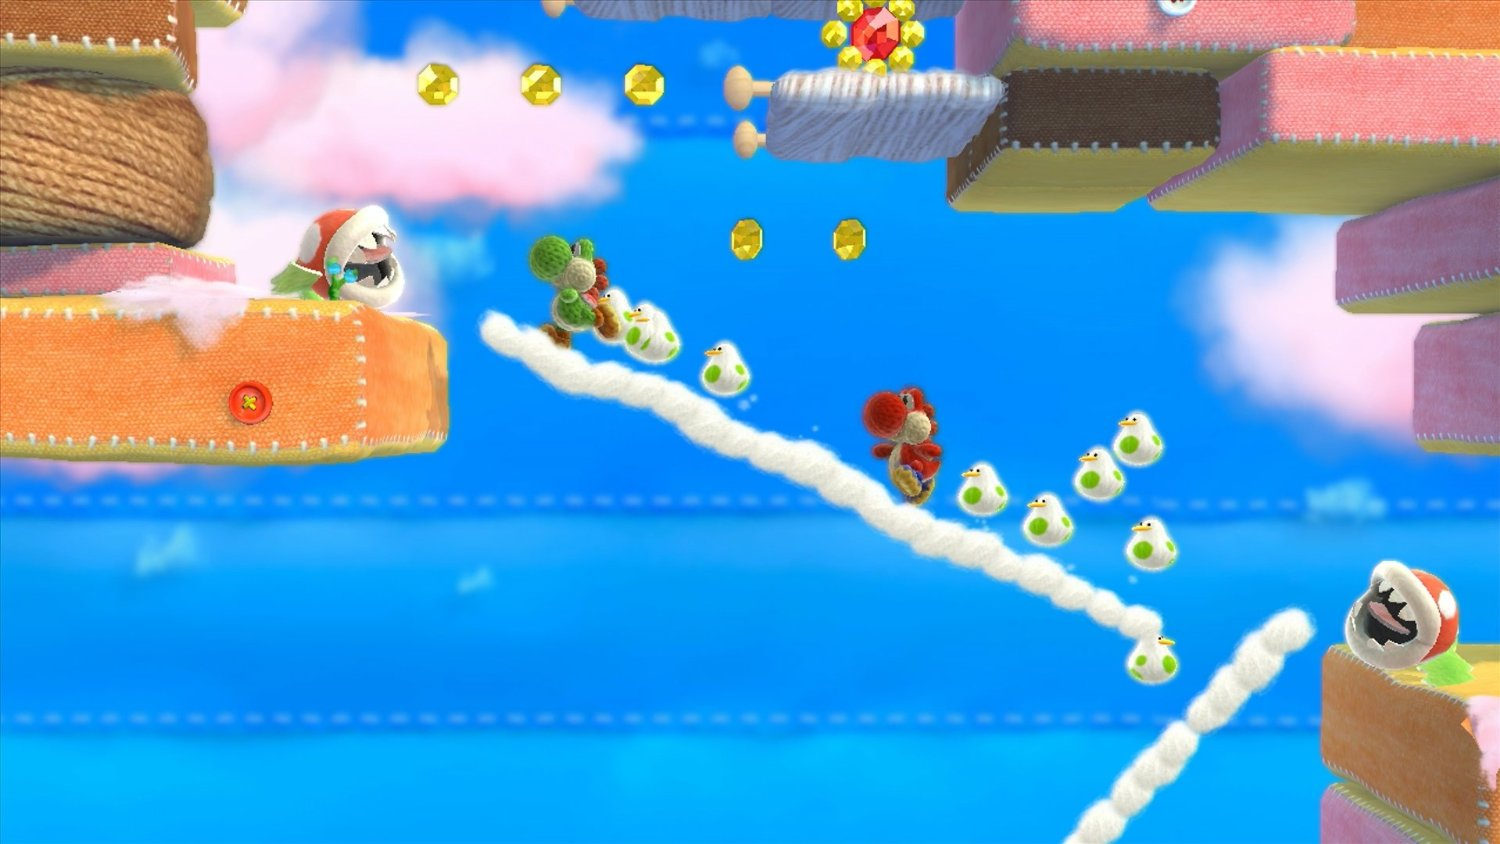 Yoshi's Woolly World Wii U Review Screenshot 2